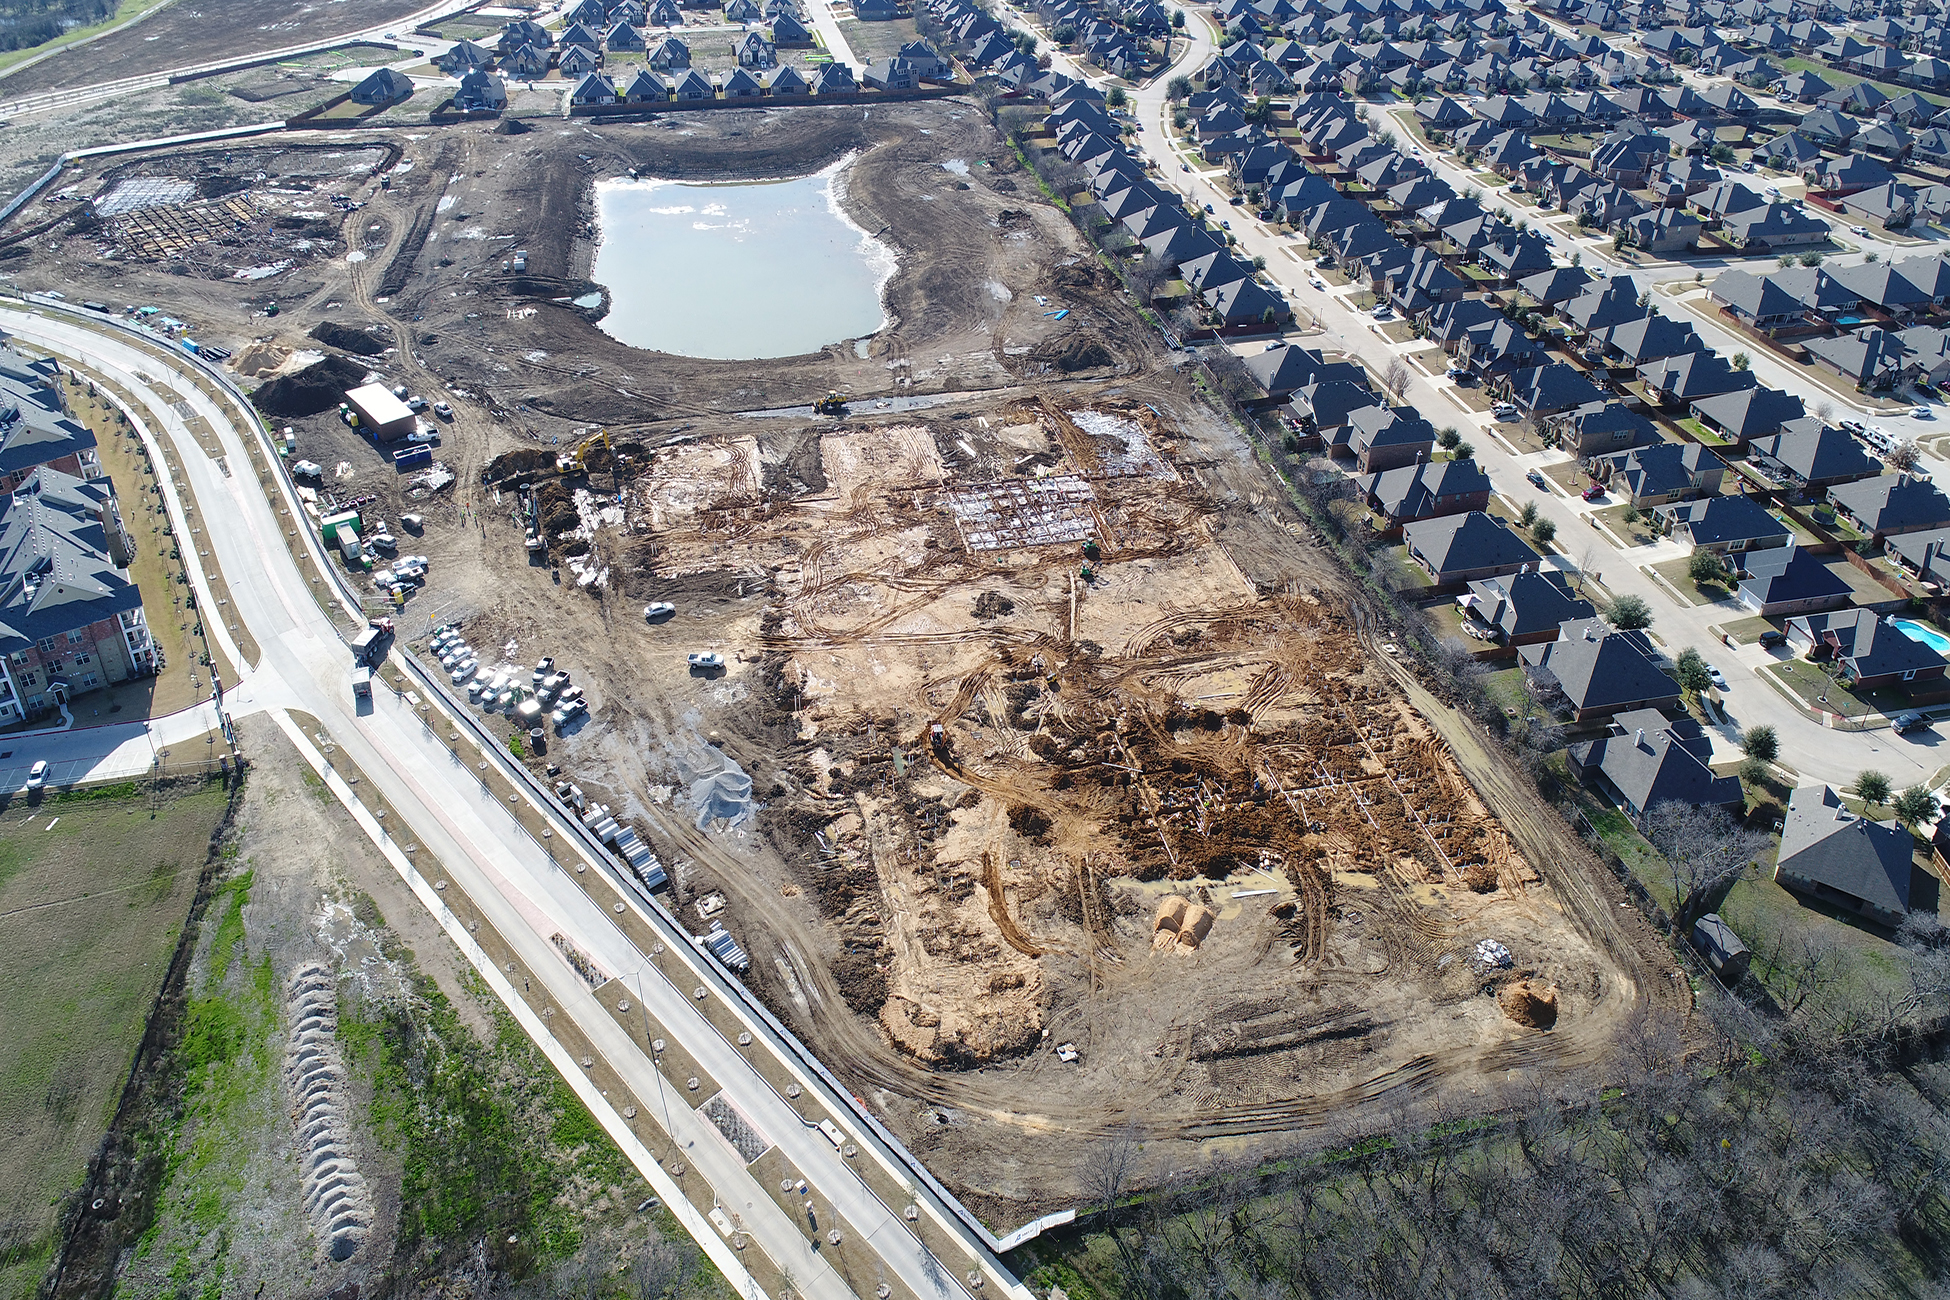 drone footage of a construction site; intended for investor updates